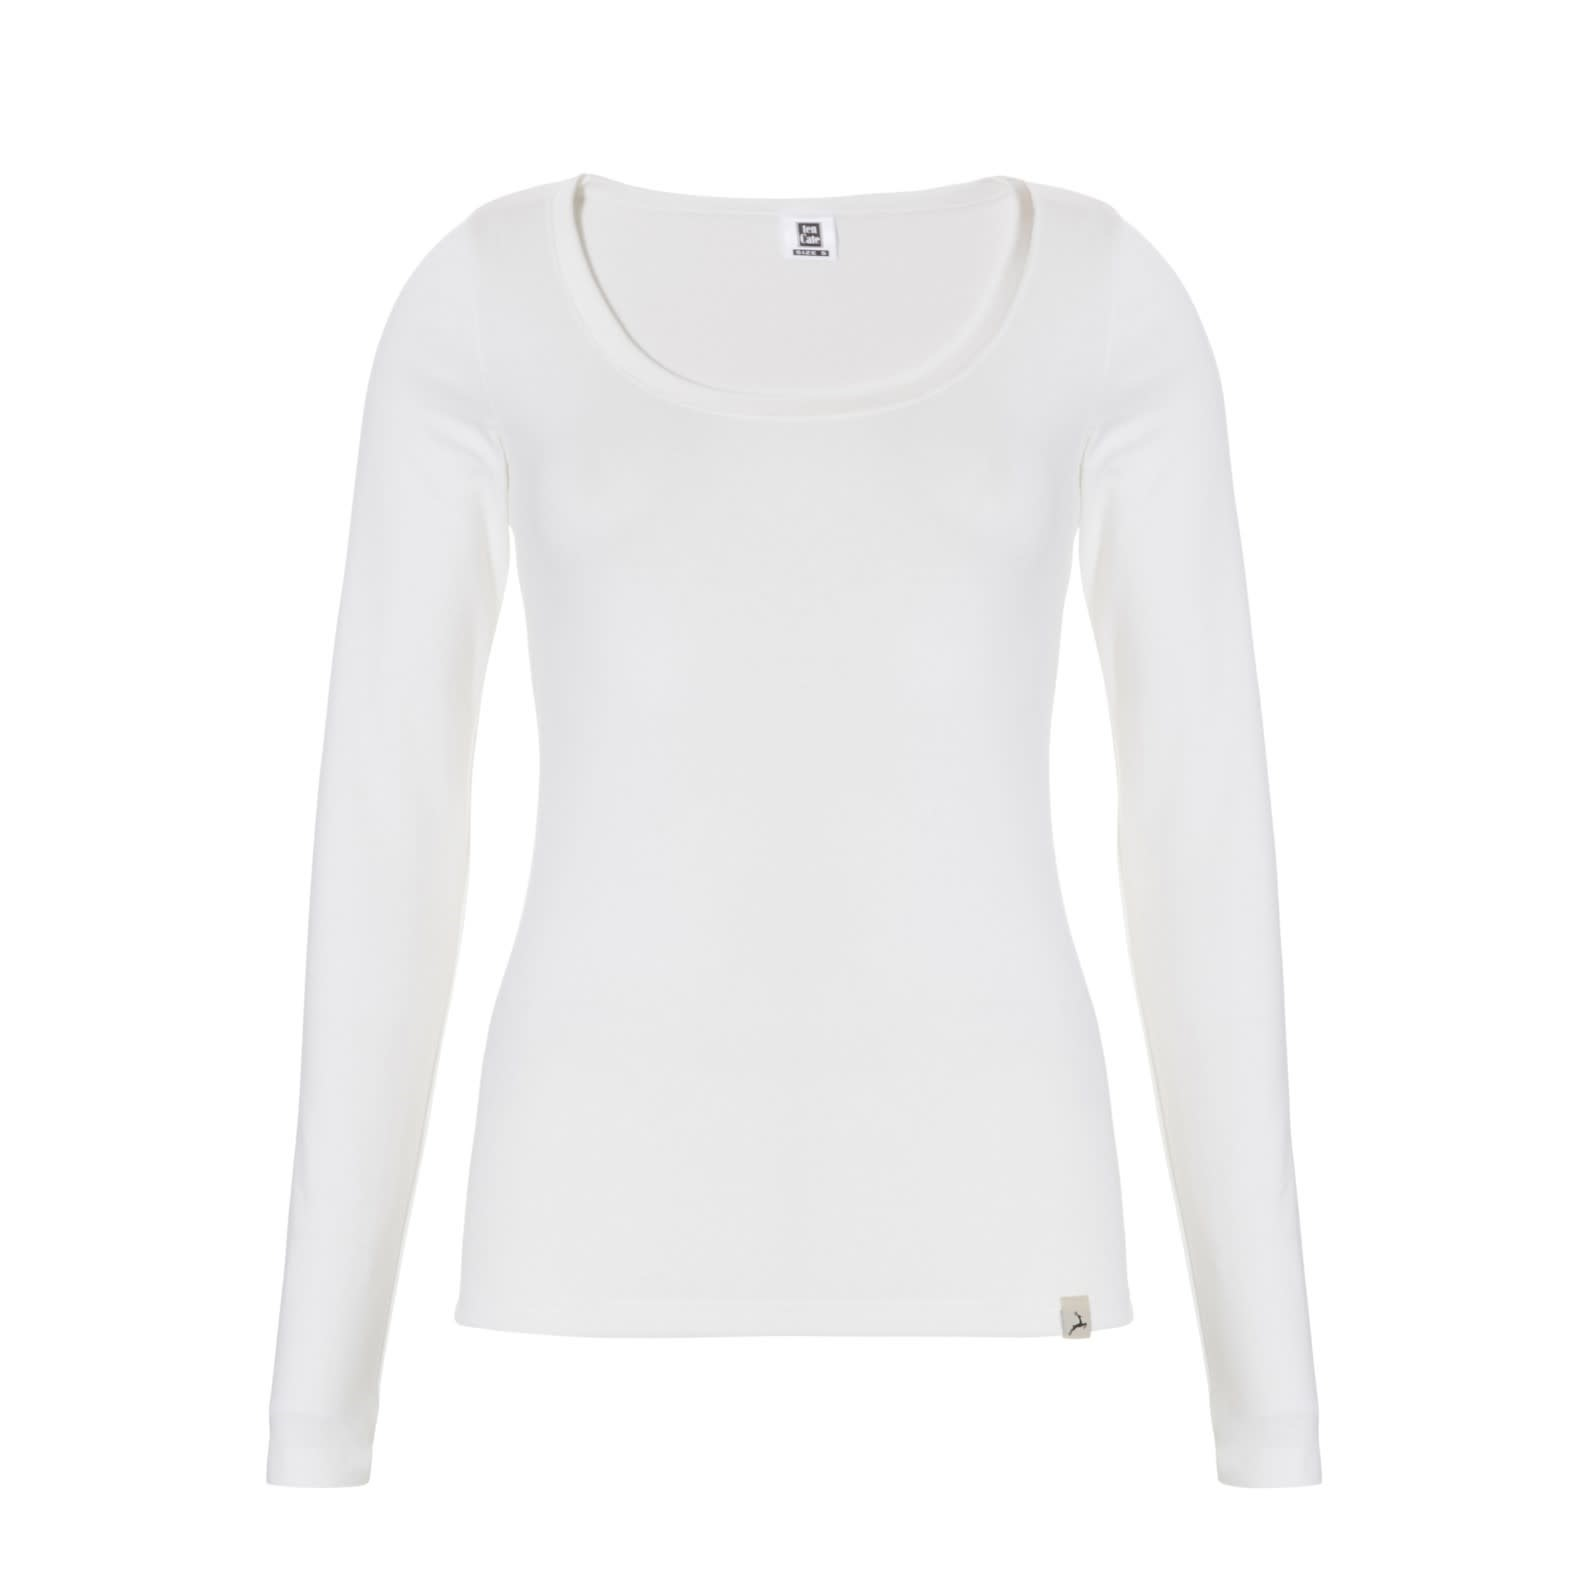 Thermo T-shirt met lange mouw 30241 - wit-1